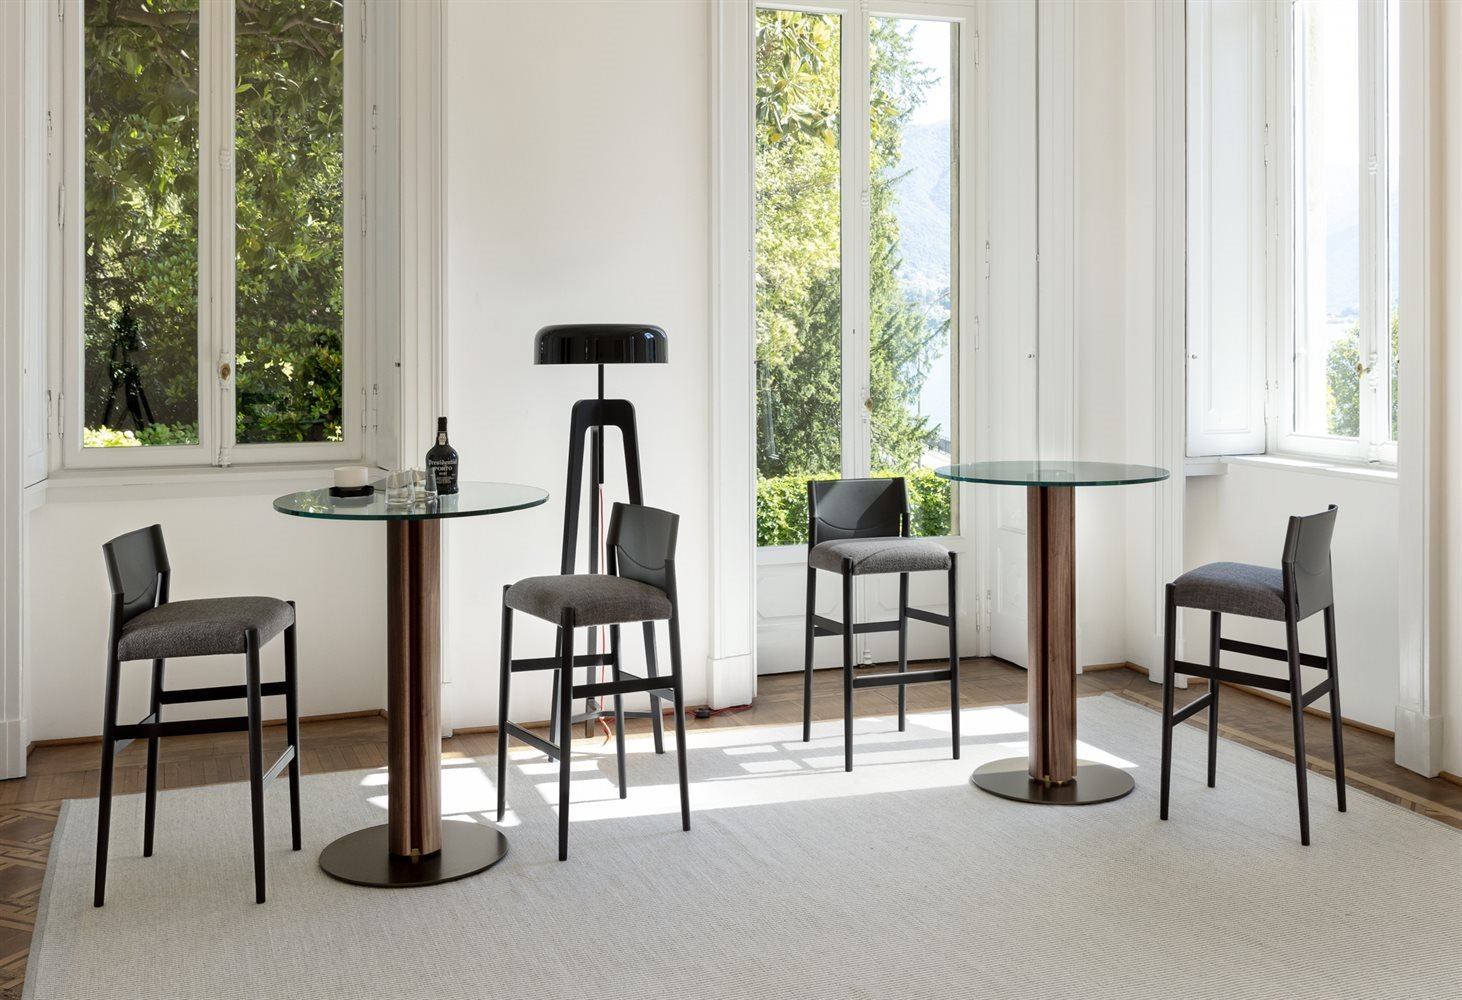 Quadrifoglio Bistrot Bar Table from Porada, designed by C. Ballabio